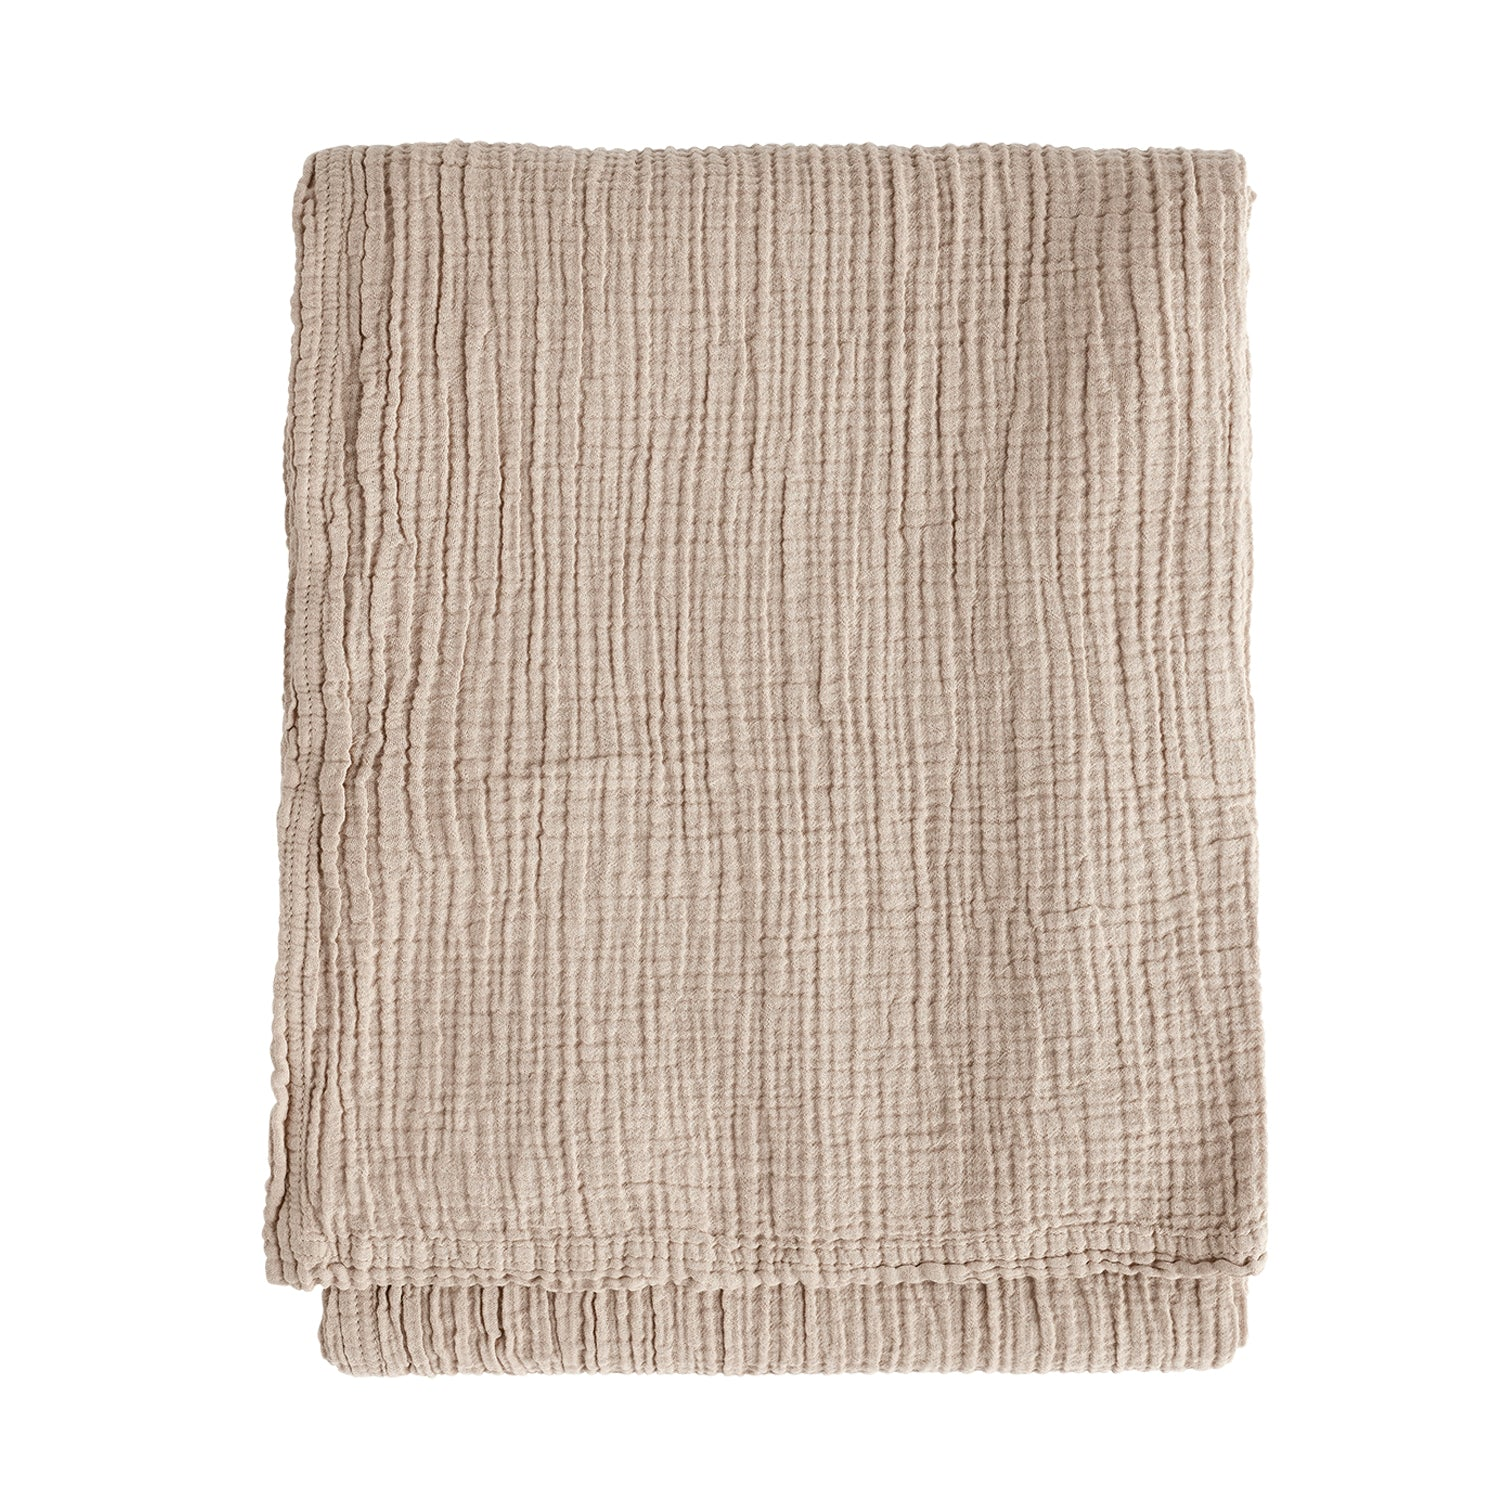 Tine K Home Plaid Hazel